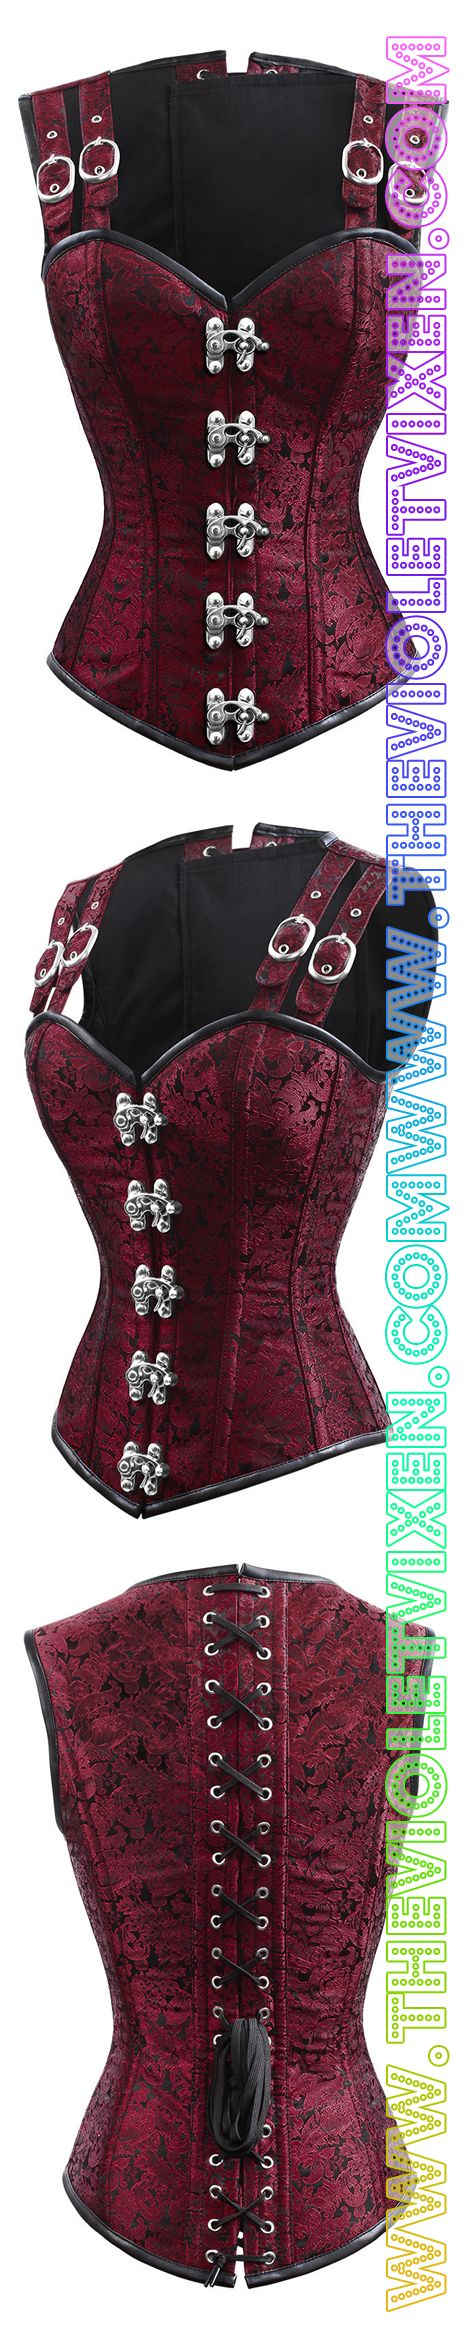 Love this corset!! Gorgeous red, overbust, authentic, great for slimming down our sexy Vixens. The Violet Vixen - Double-Barreled Tinker Seering Scarlet Corset, $140.00 (http://thevioletvixen.com/corsets/double-barreled-tinker-seering-scarlet-corset/)